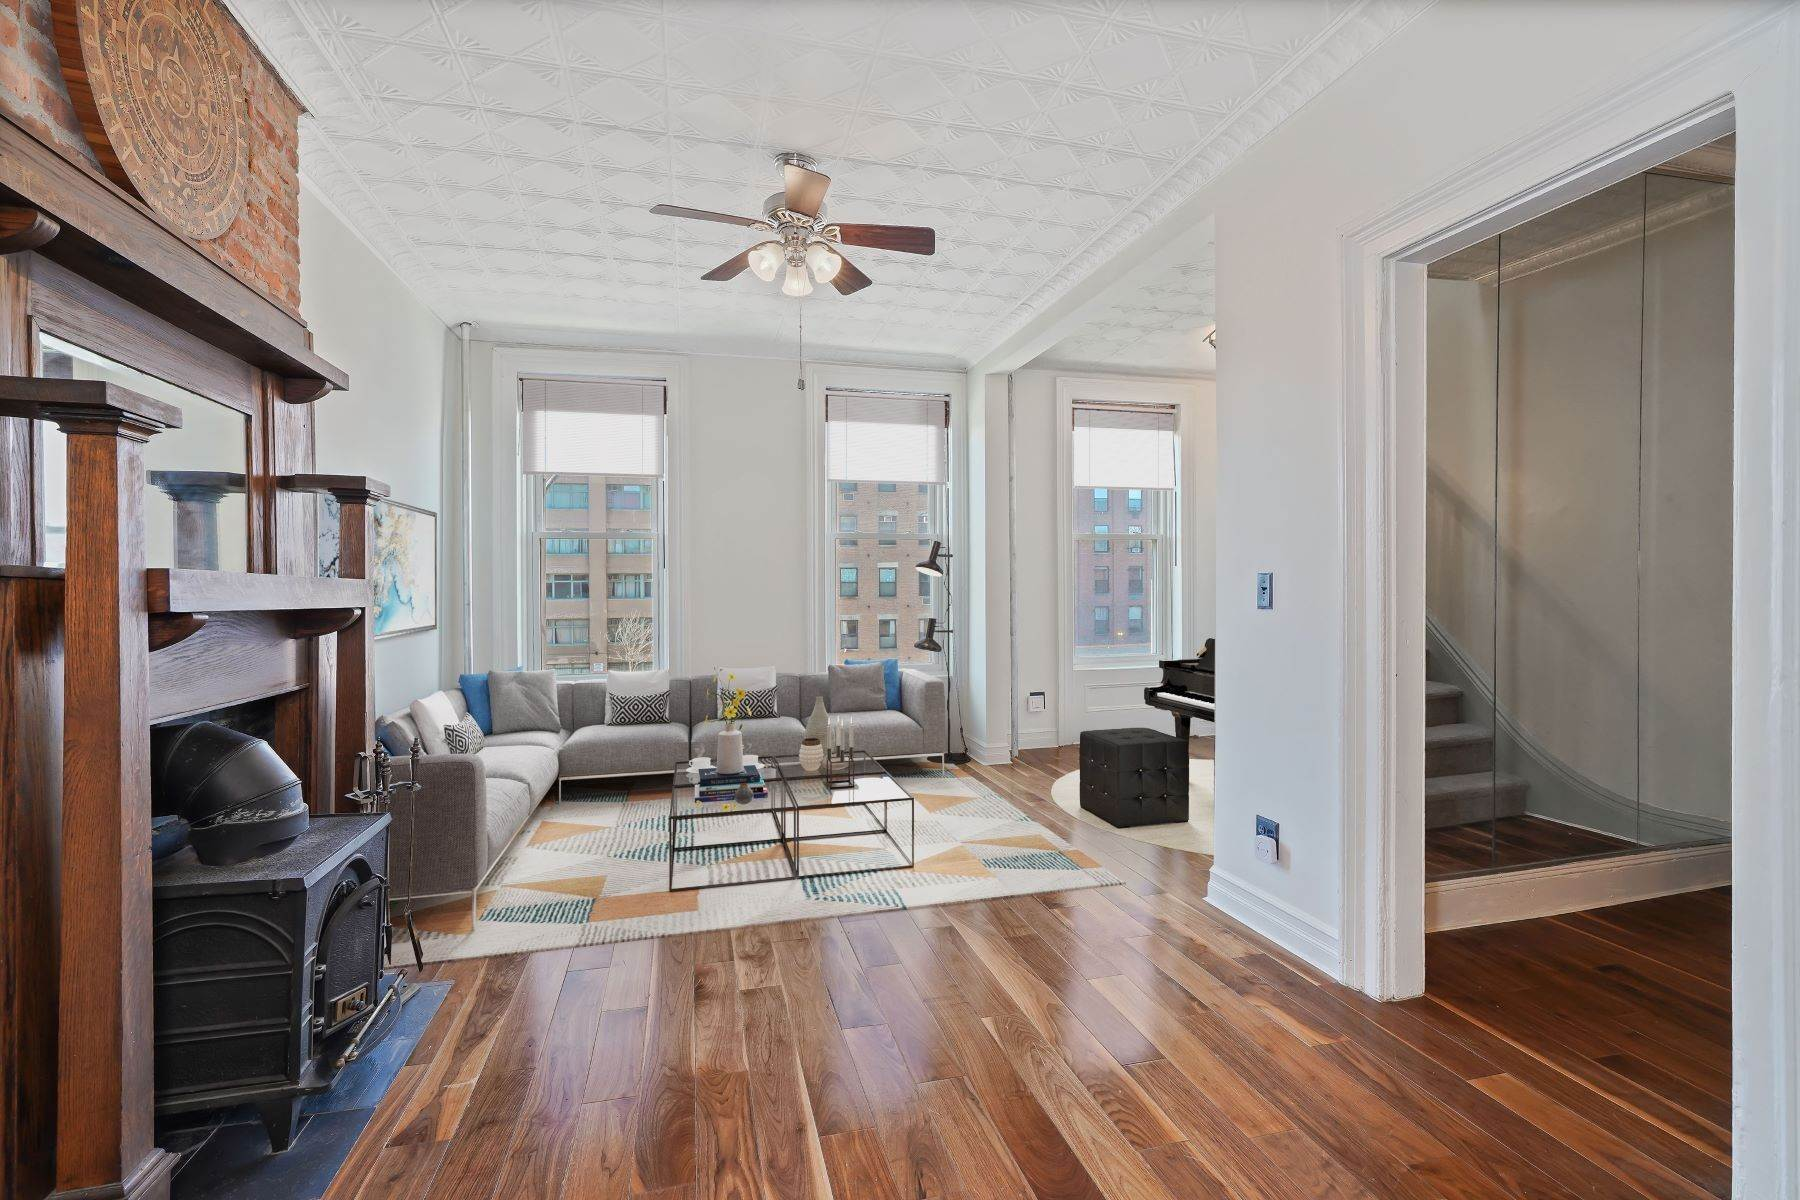 Multi-Family Homes for Sale at 507 Hicks Street Brooklyn, New York 11231 United States